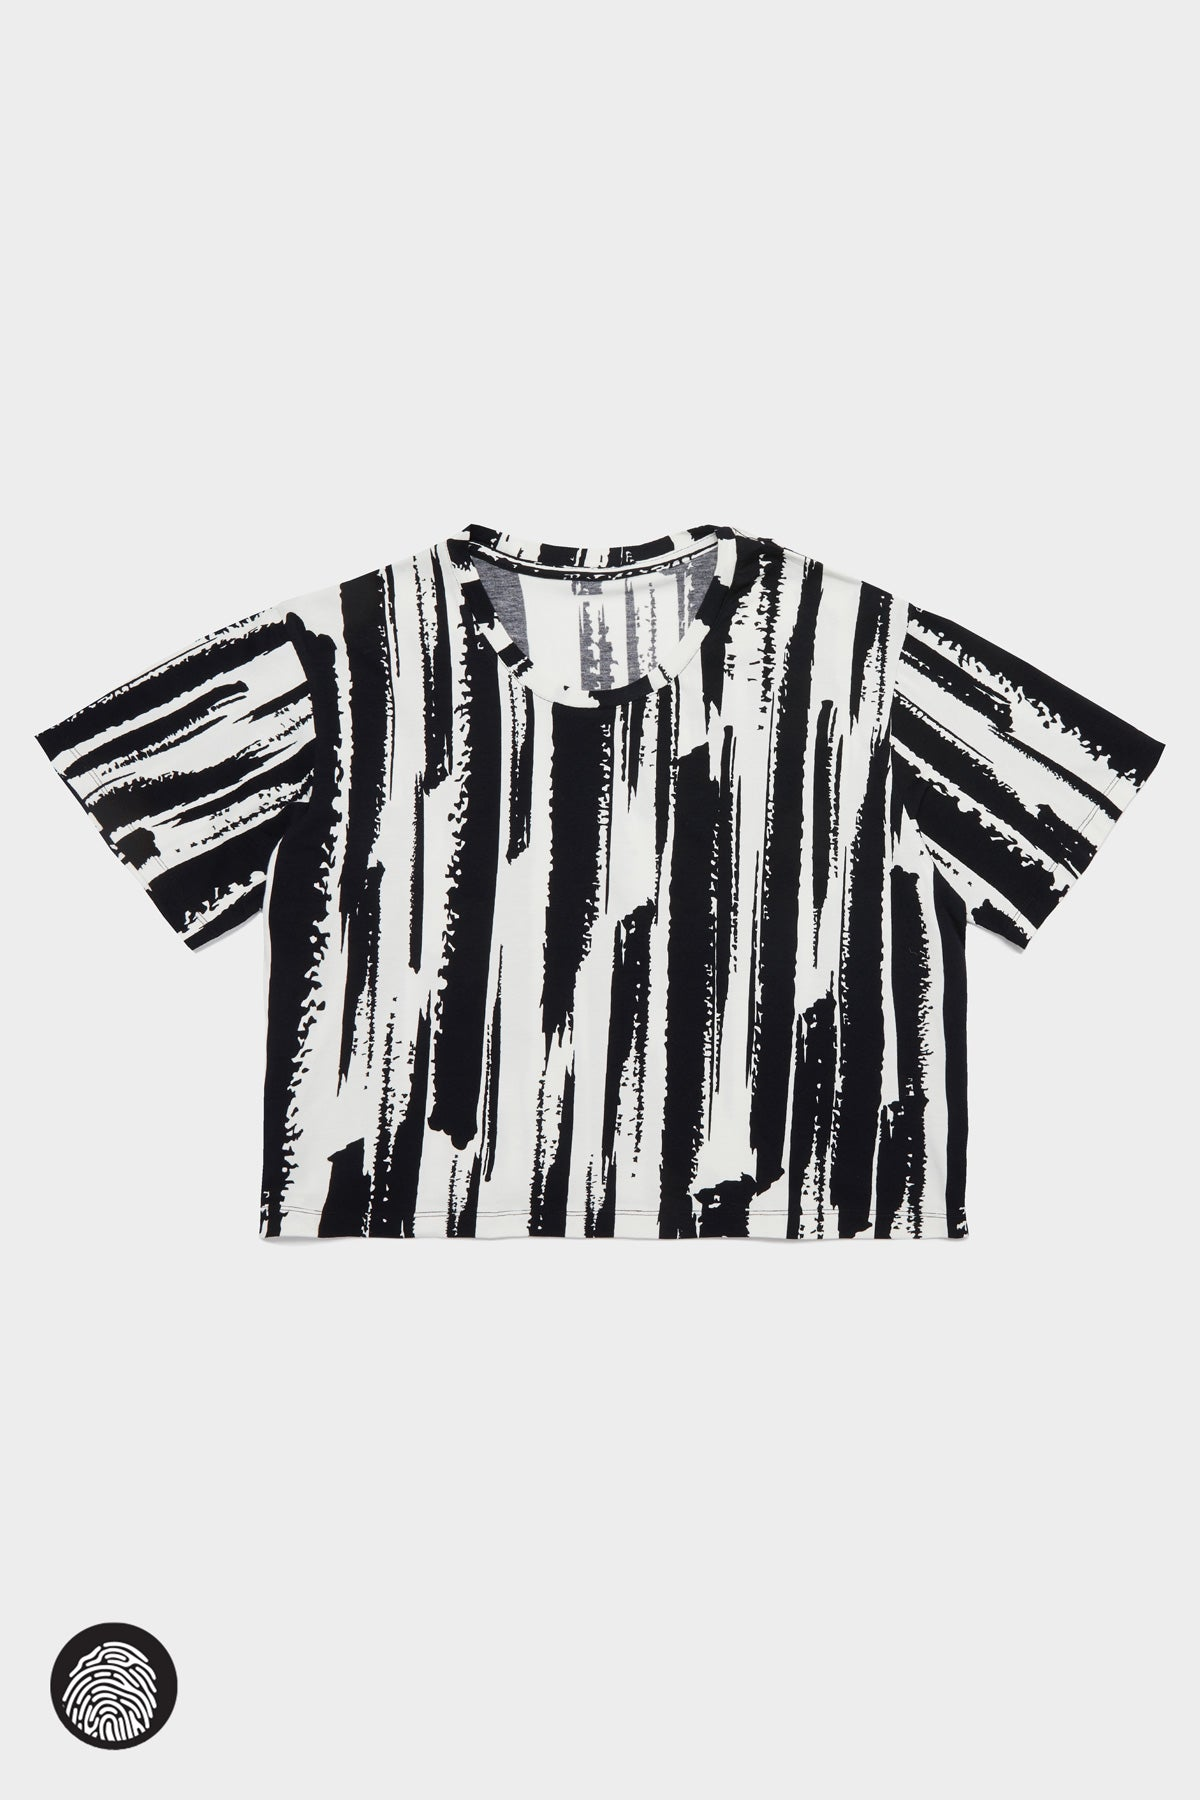 CROPPED T-SHIRT / BRUSH STROKE BLACK | Megan Renee